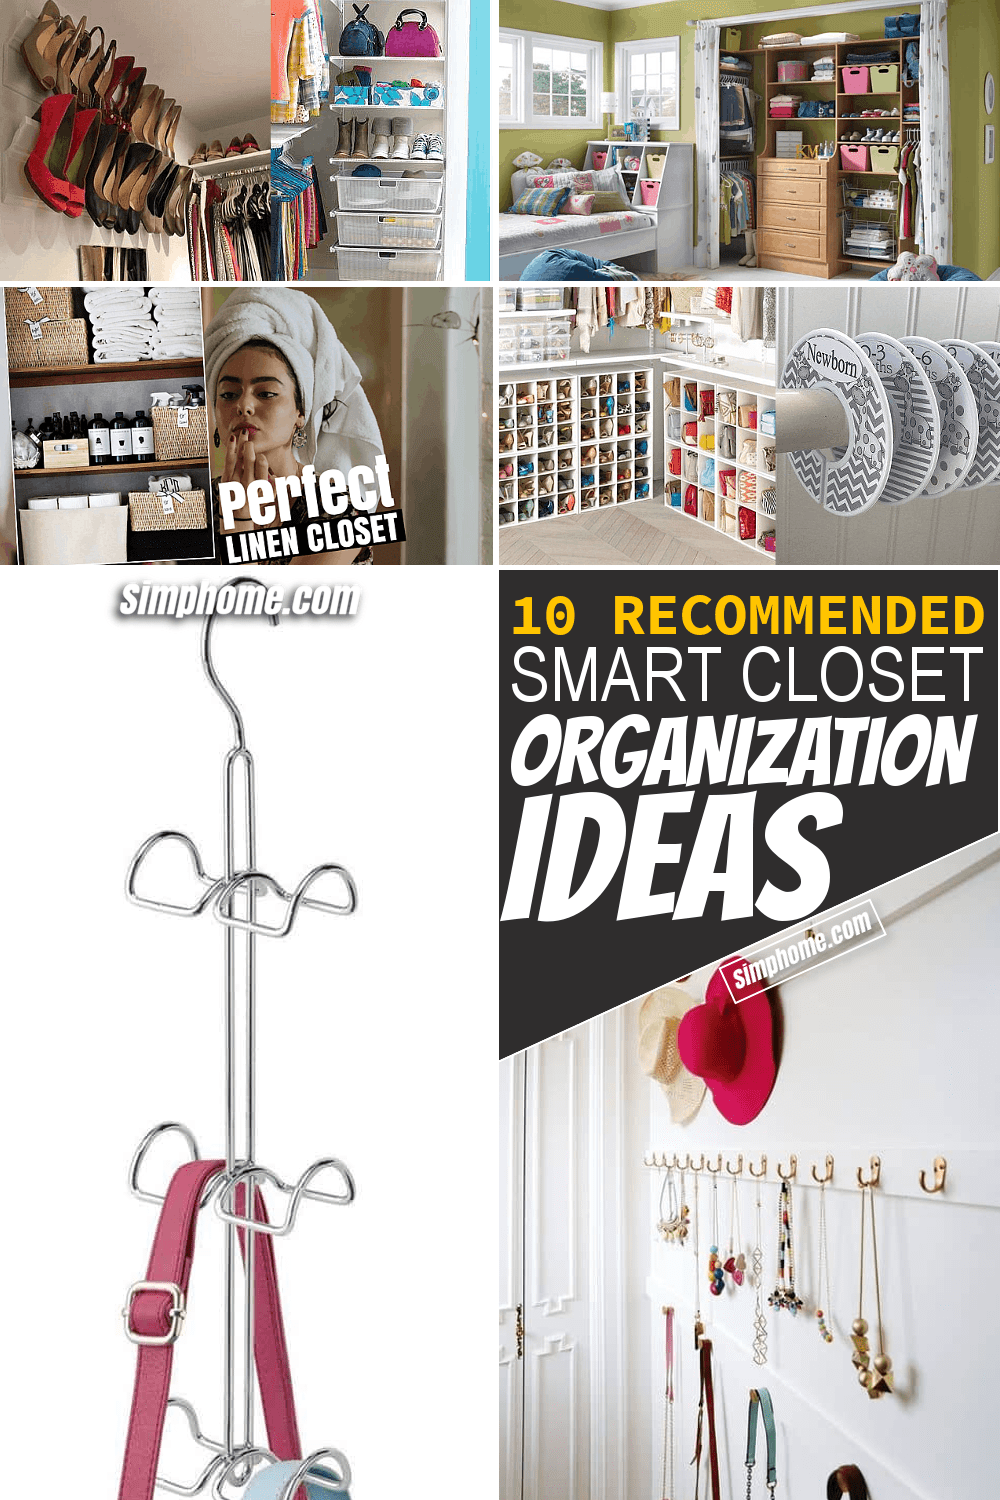 Simphome.com 10 Smart Closet Organization Ideas Pinterest Featured Image